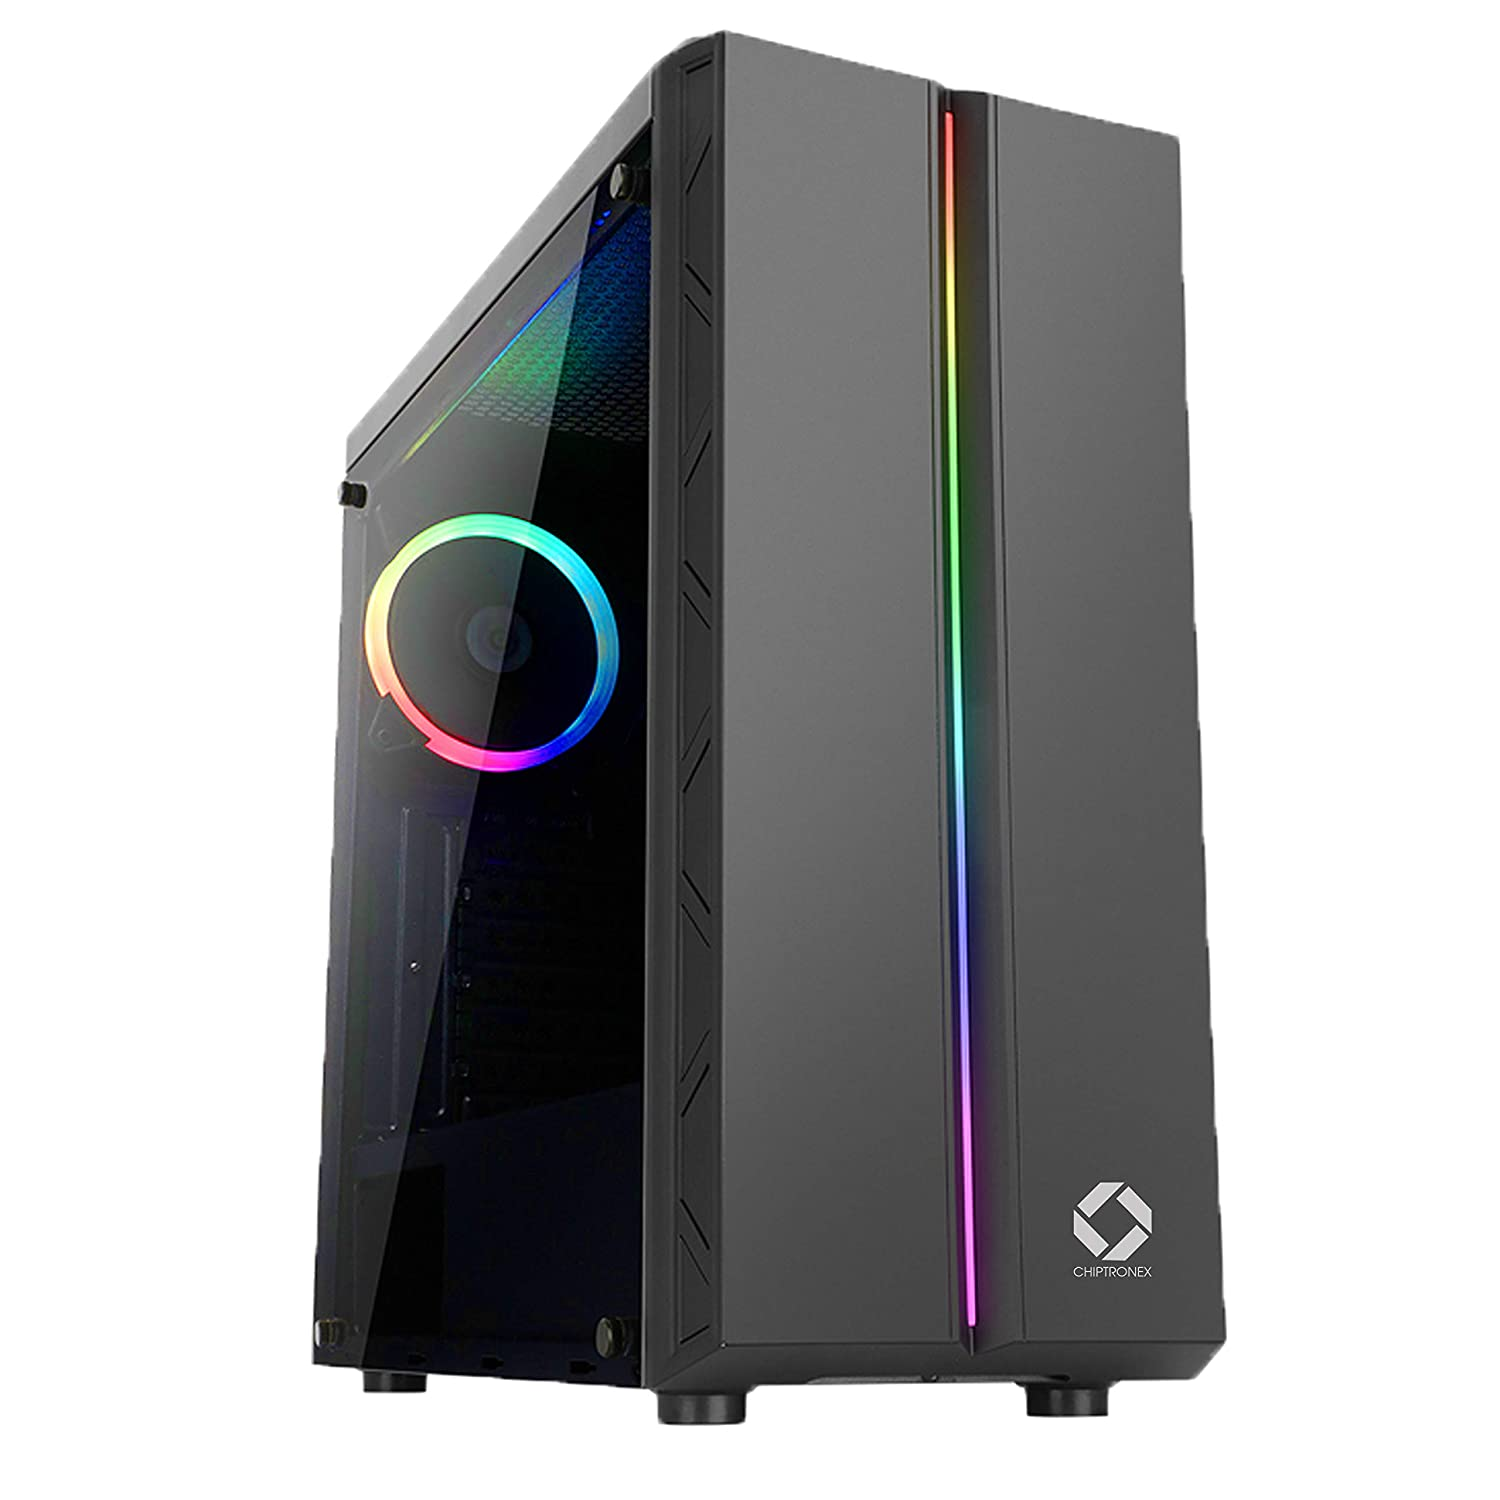 CHIPTRONEX MX1 RGB Mid Tower Cabinet